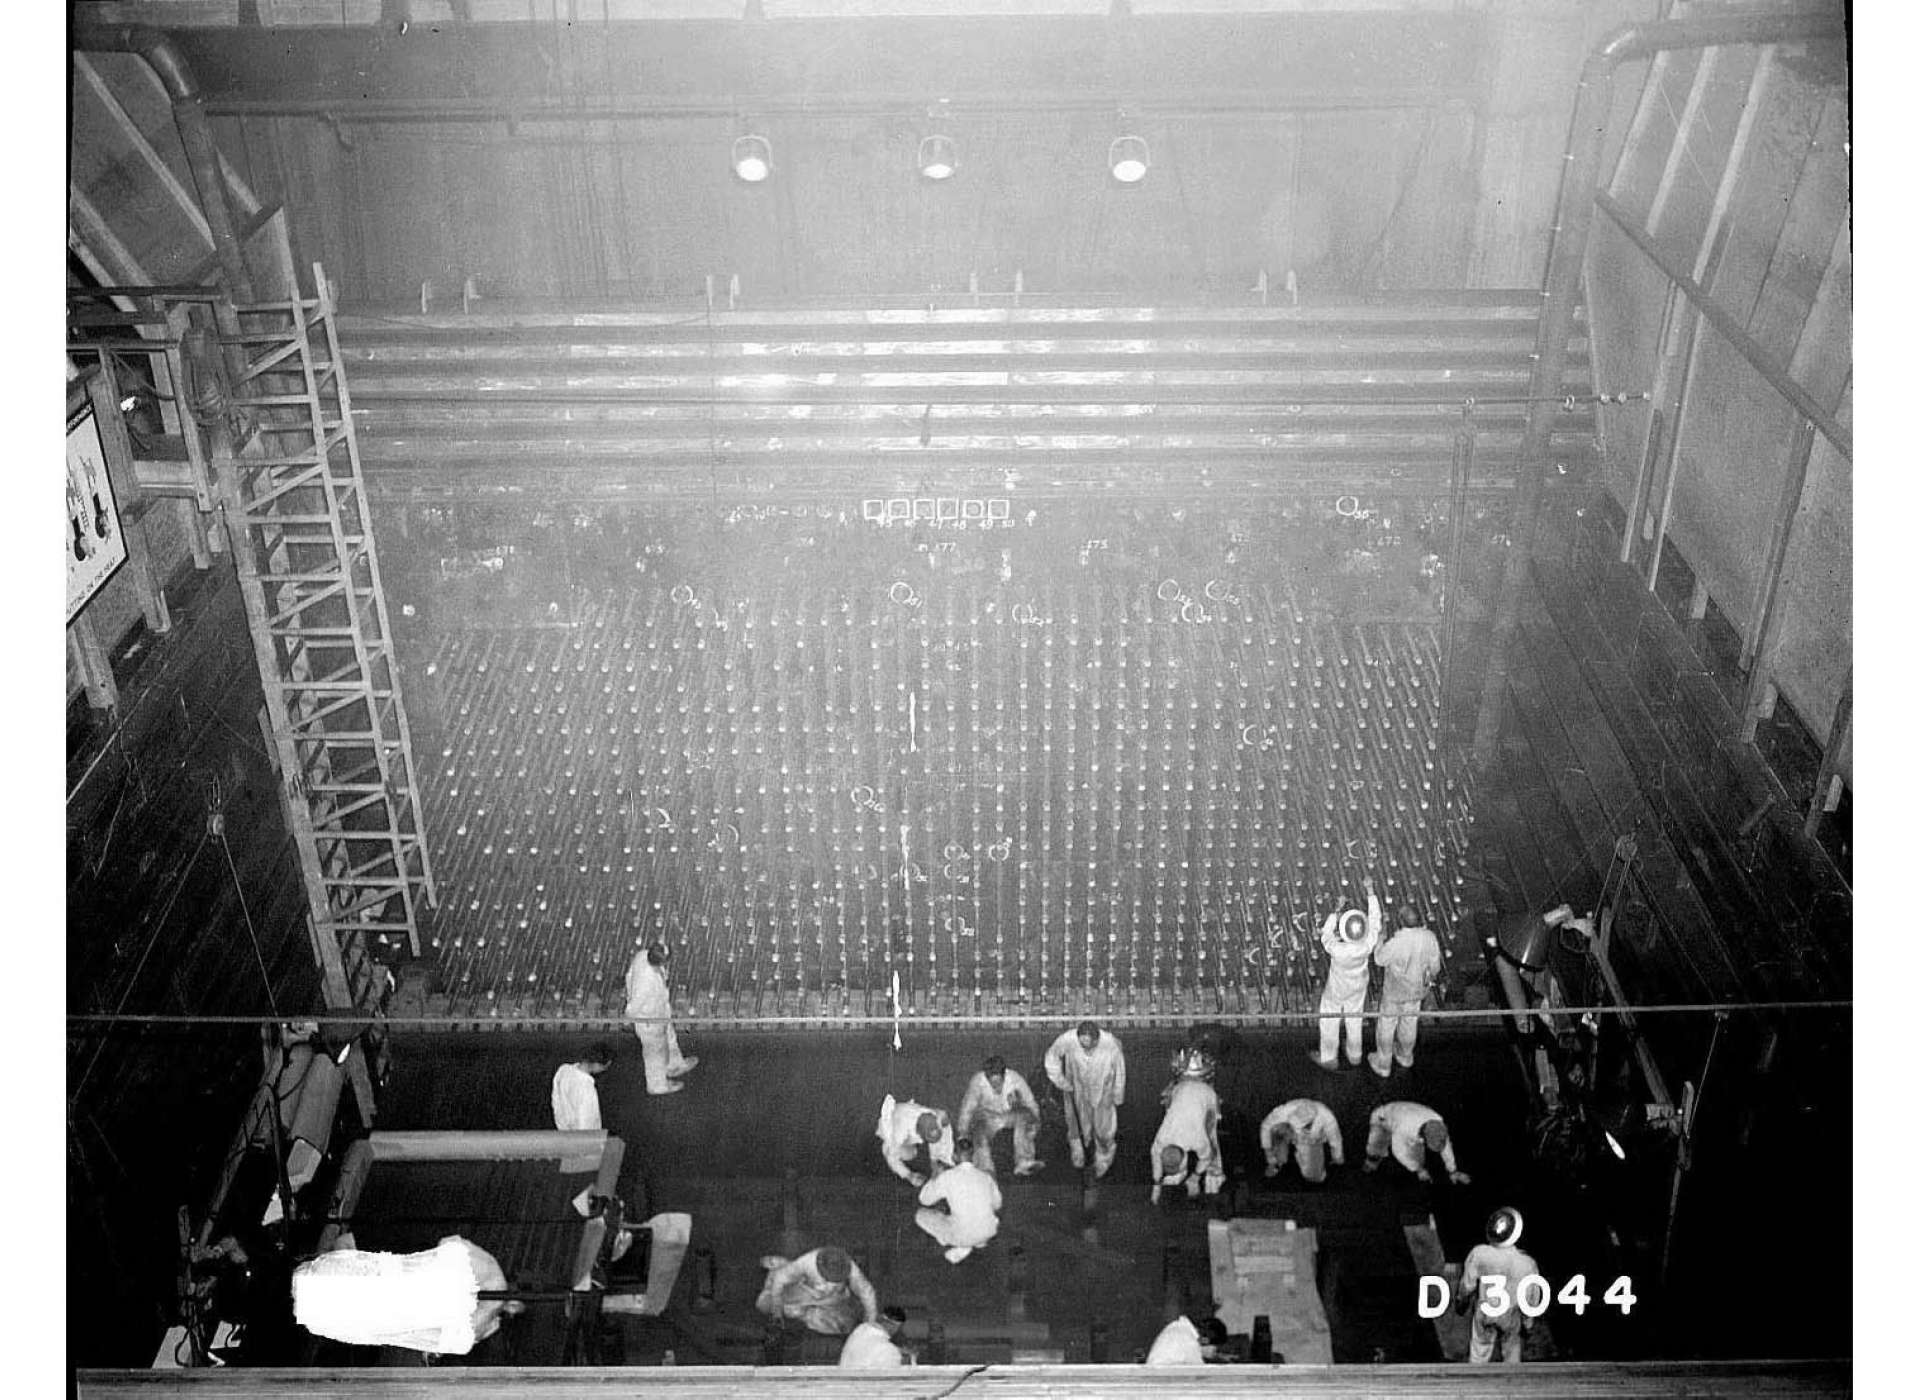 Men working near the face of B Reactor in 1944. Courtesy of The National Archives.